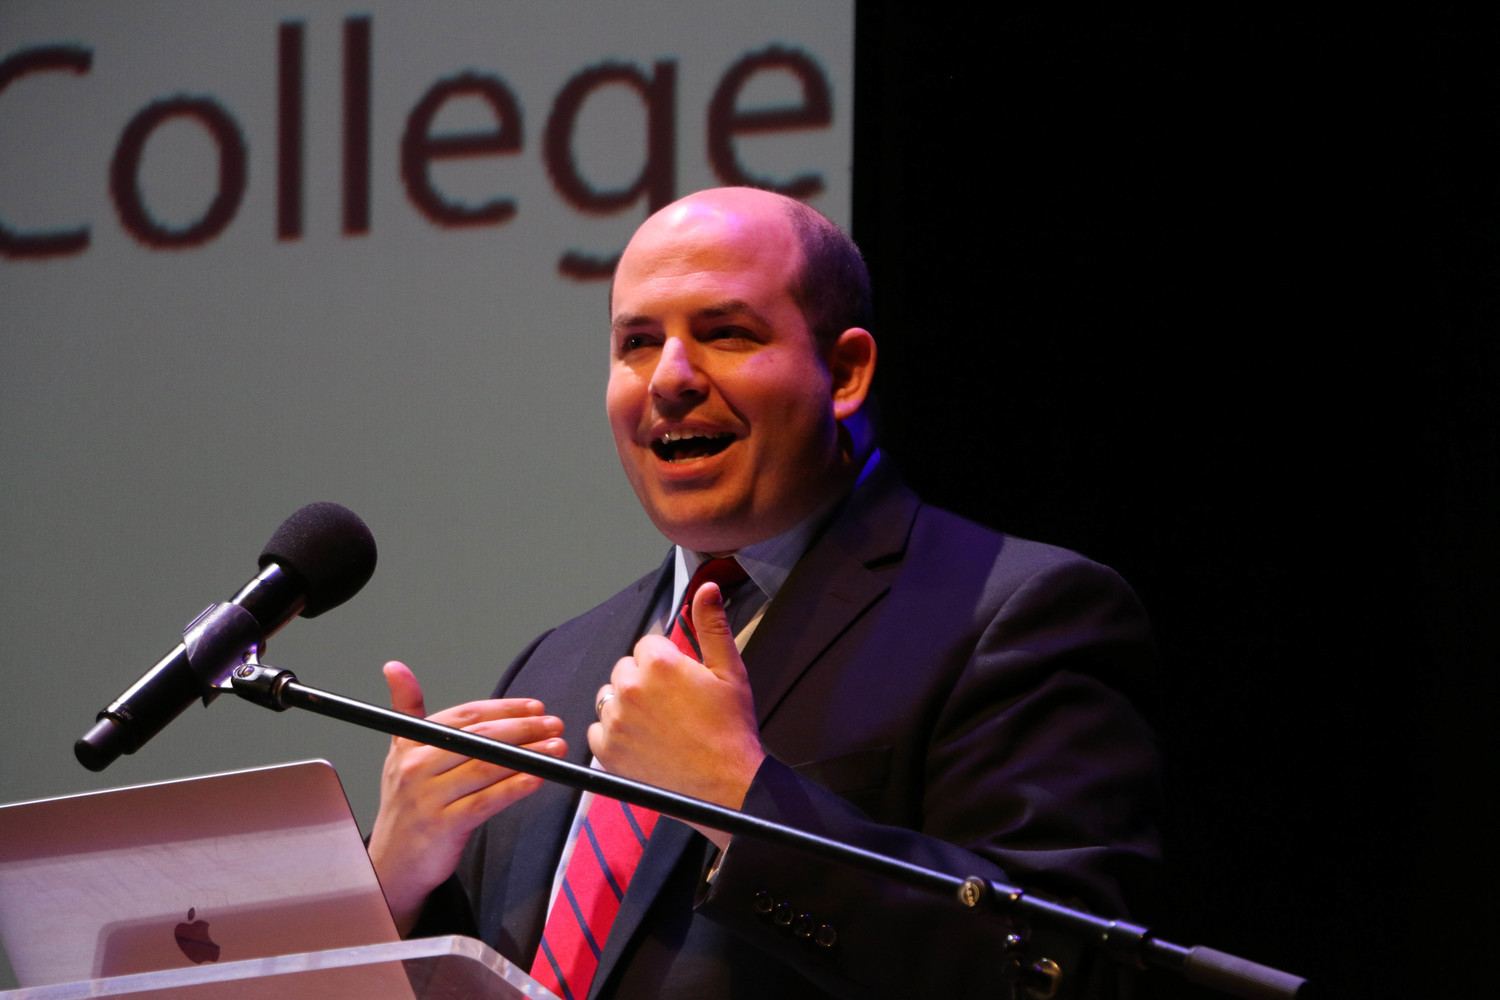 Brian Stelter was the keynote speaker at the 14th Joe and Peggy Maher Leadership Forum at Molloy College on April 5.